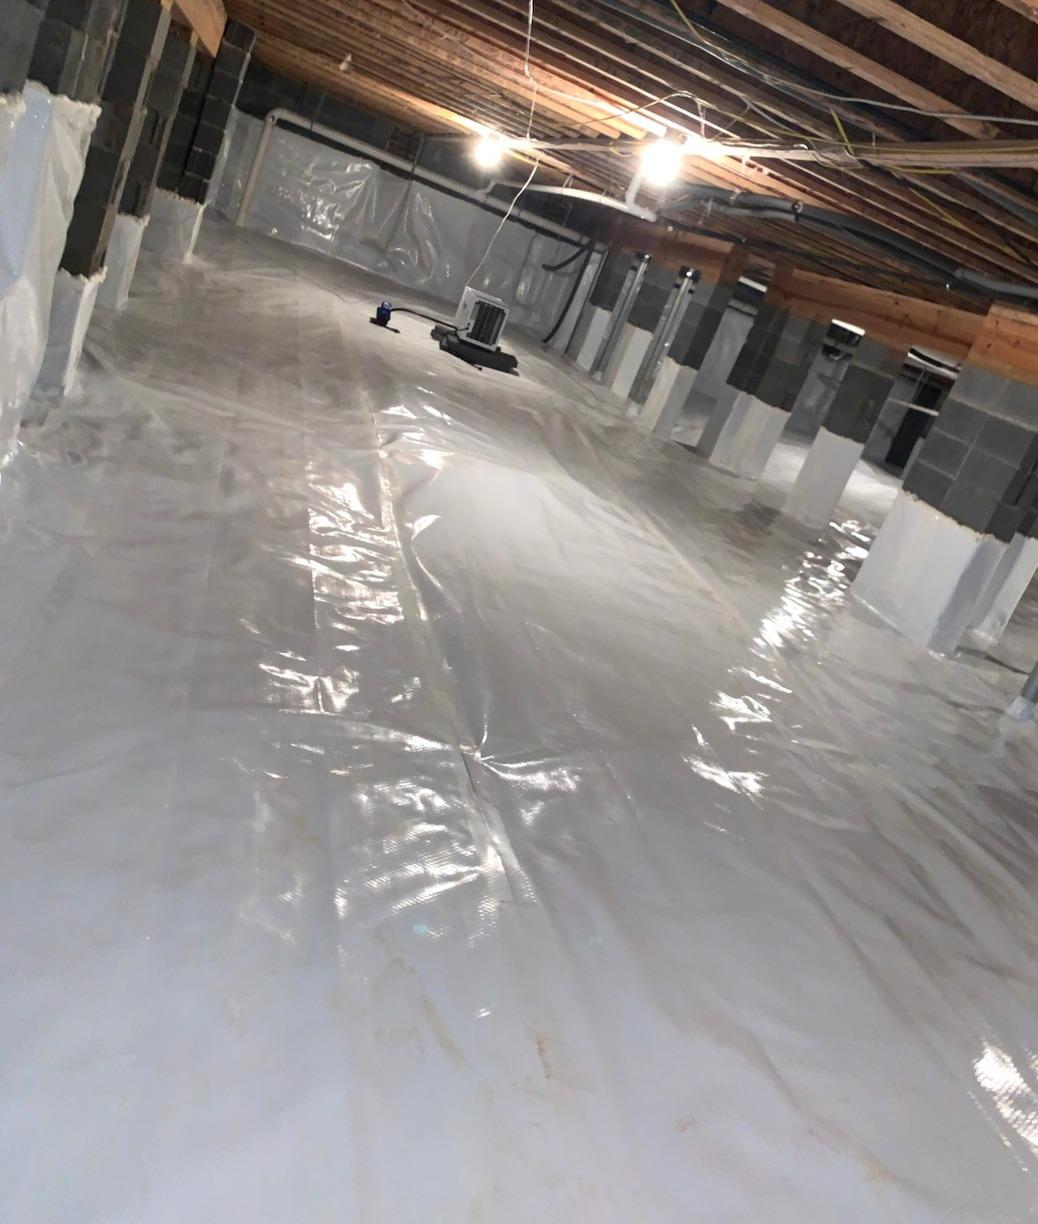 Ridgeway SC Crawl Space Gets Dehumidifier and Drainage System Installed - After Photo